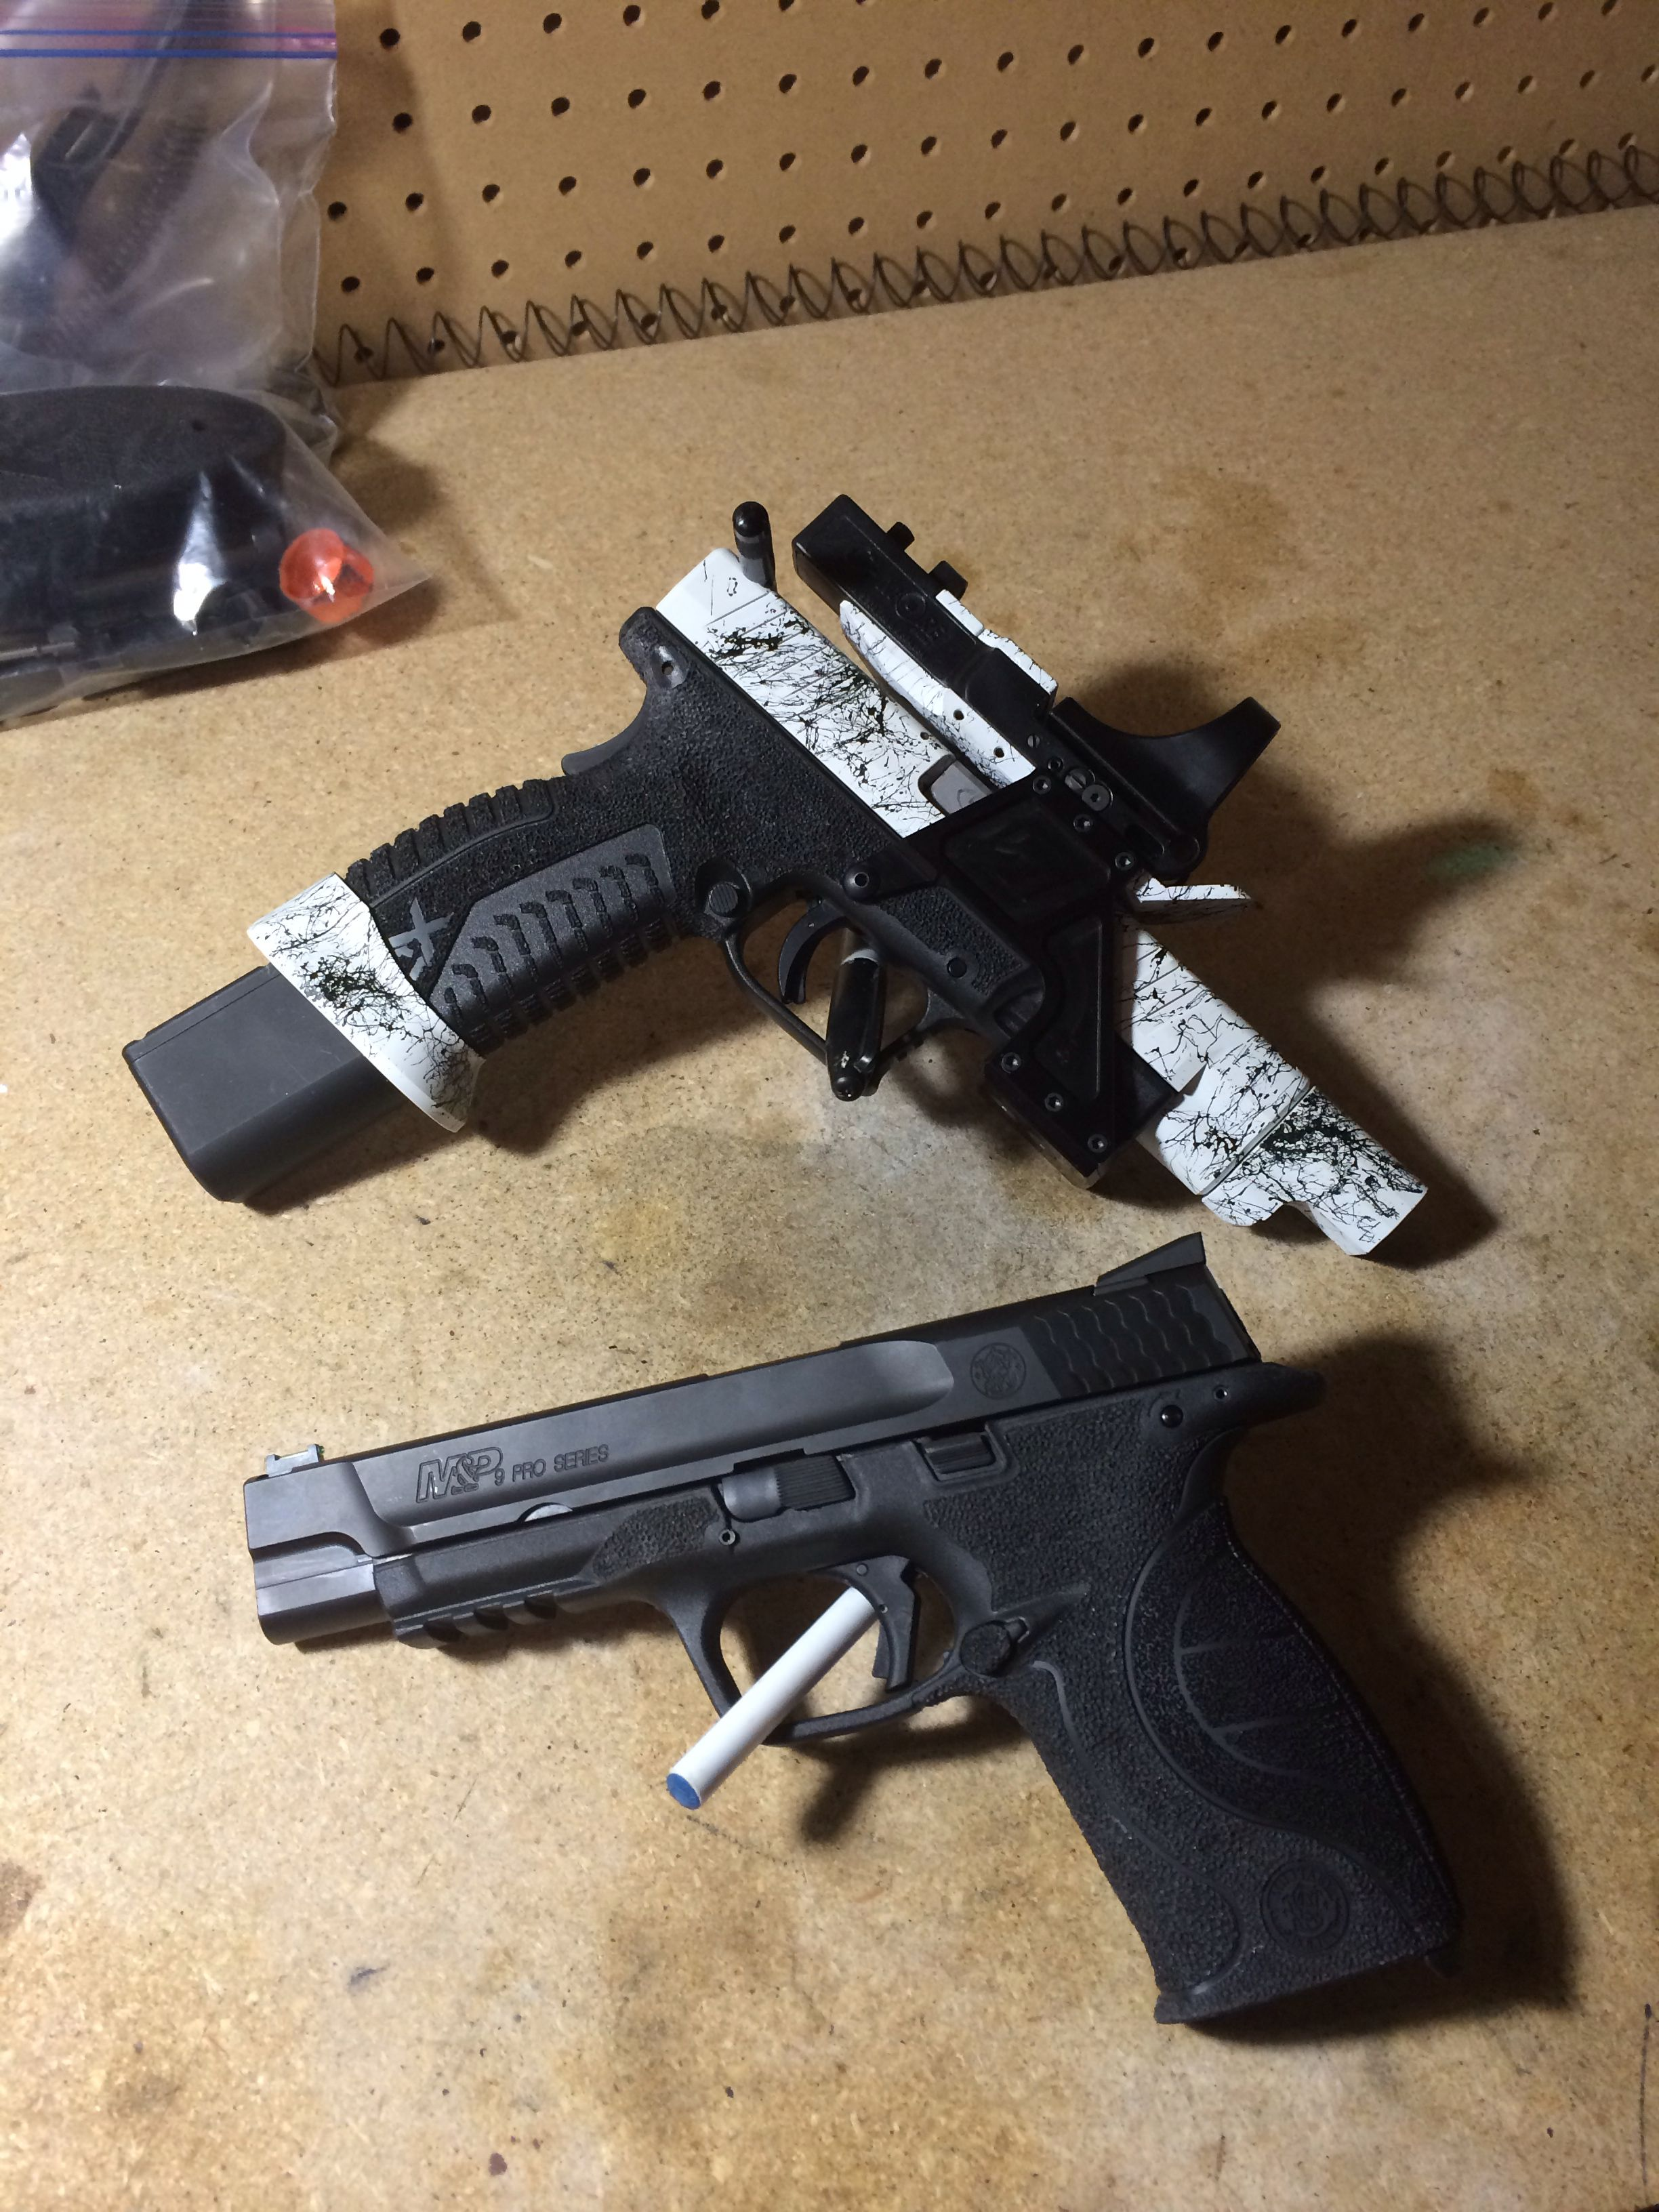 XDm set up for steel challenge and an M&P for the 3 gun tac ops